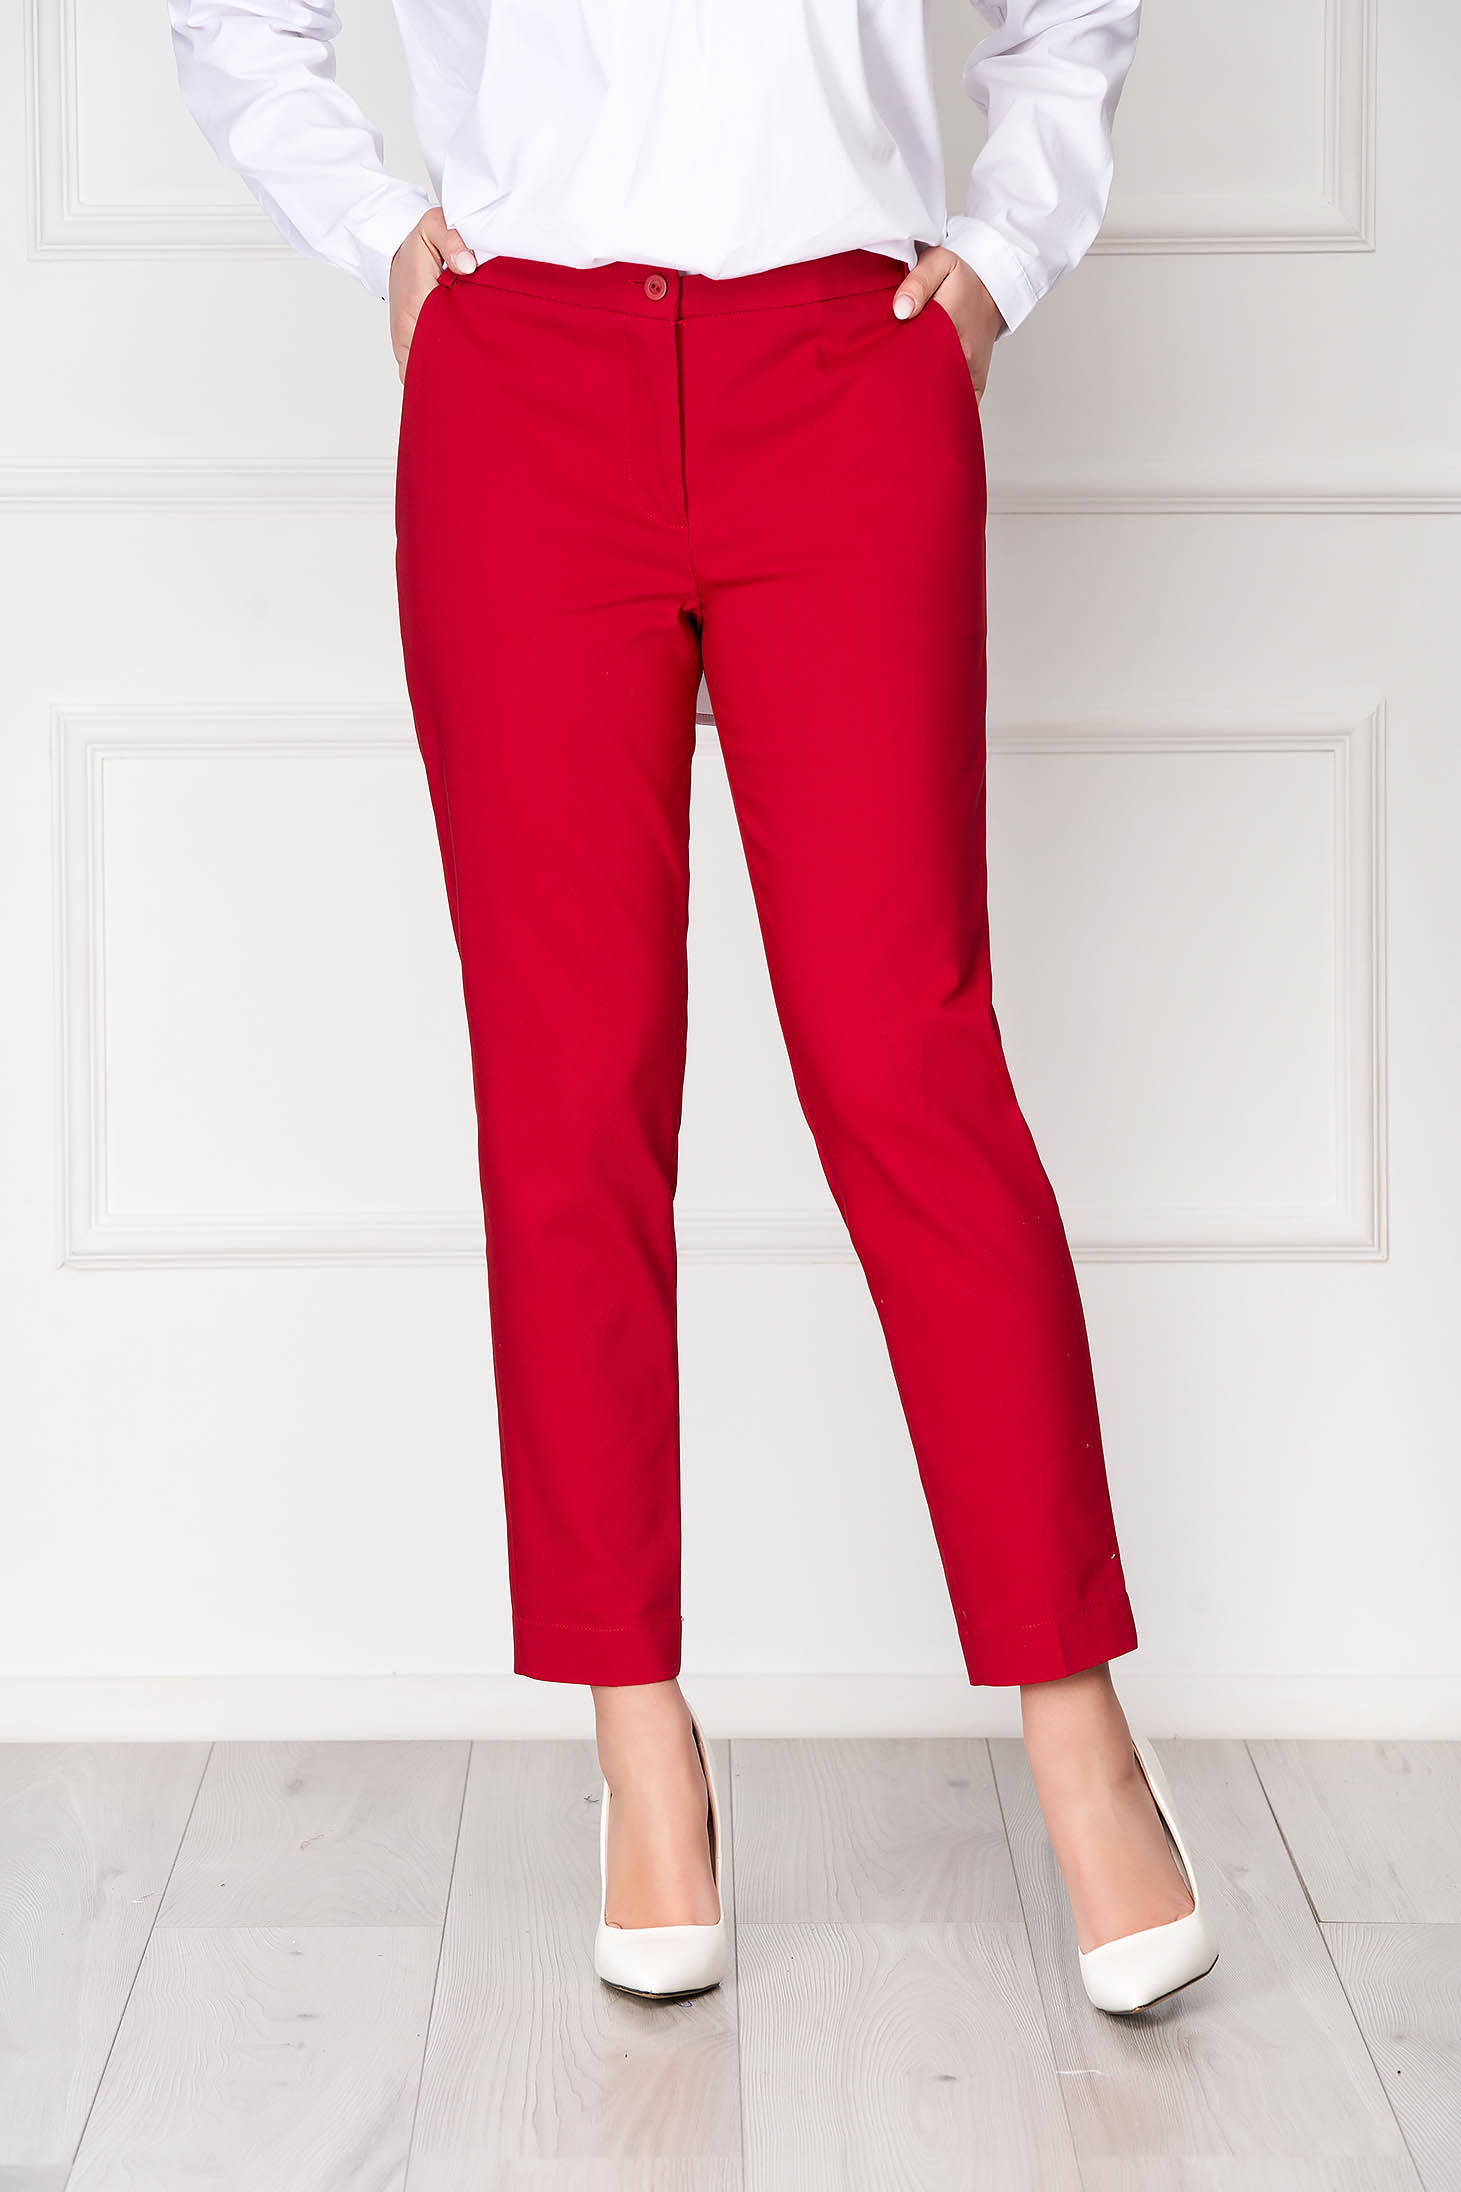 Red trousers elegant conical long medium waist cloth with pockets